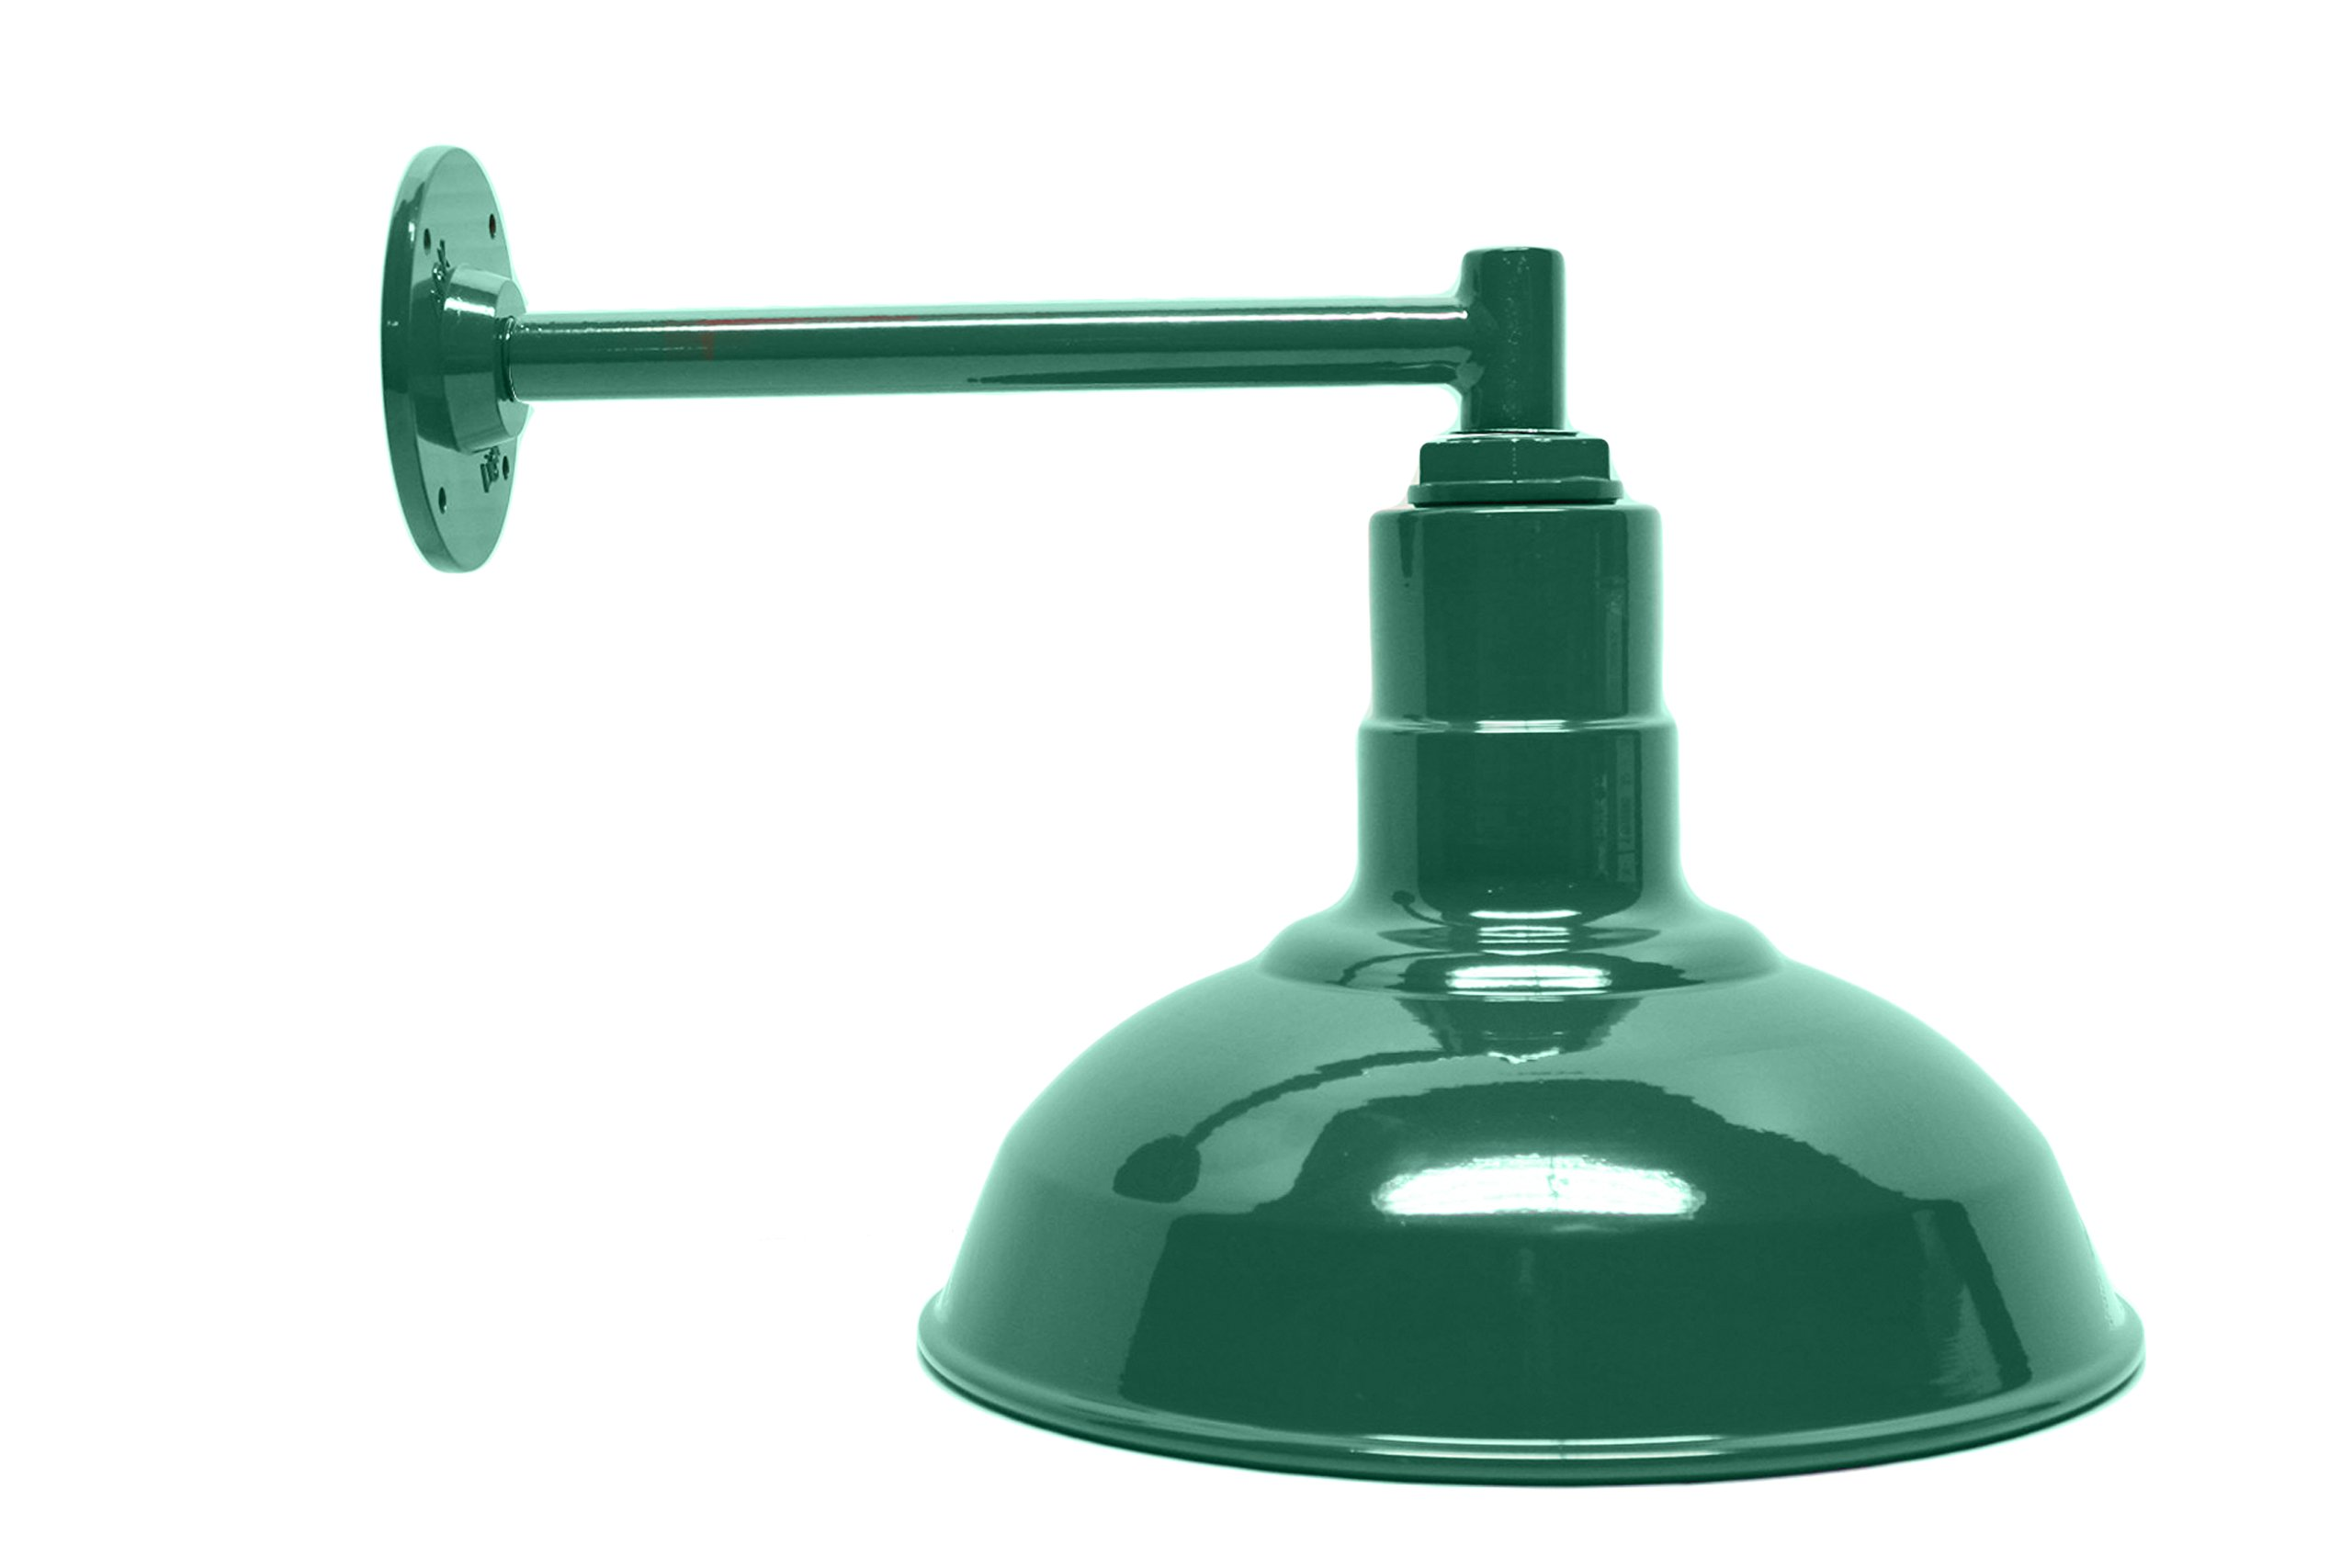 The Standard Light Kit | Green 12 Inch Standard Steel Shade | 11 Inch Short Stem Wall Mounted Steel Arm | Made in the USA